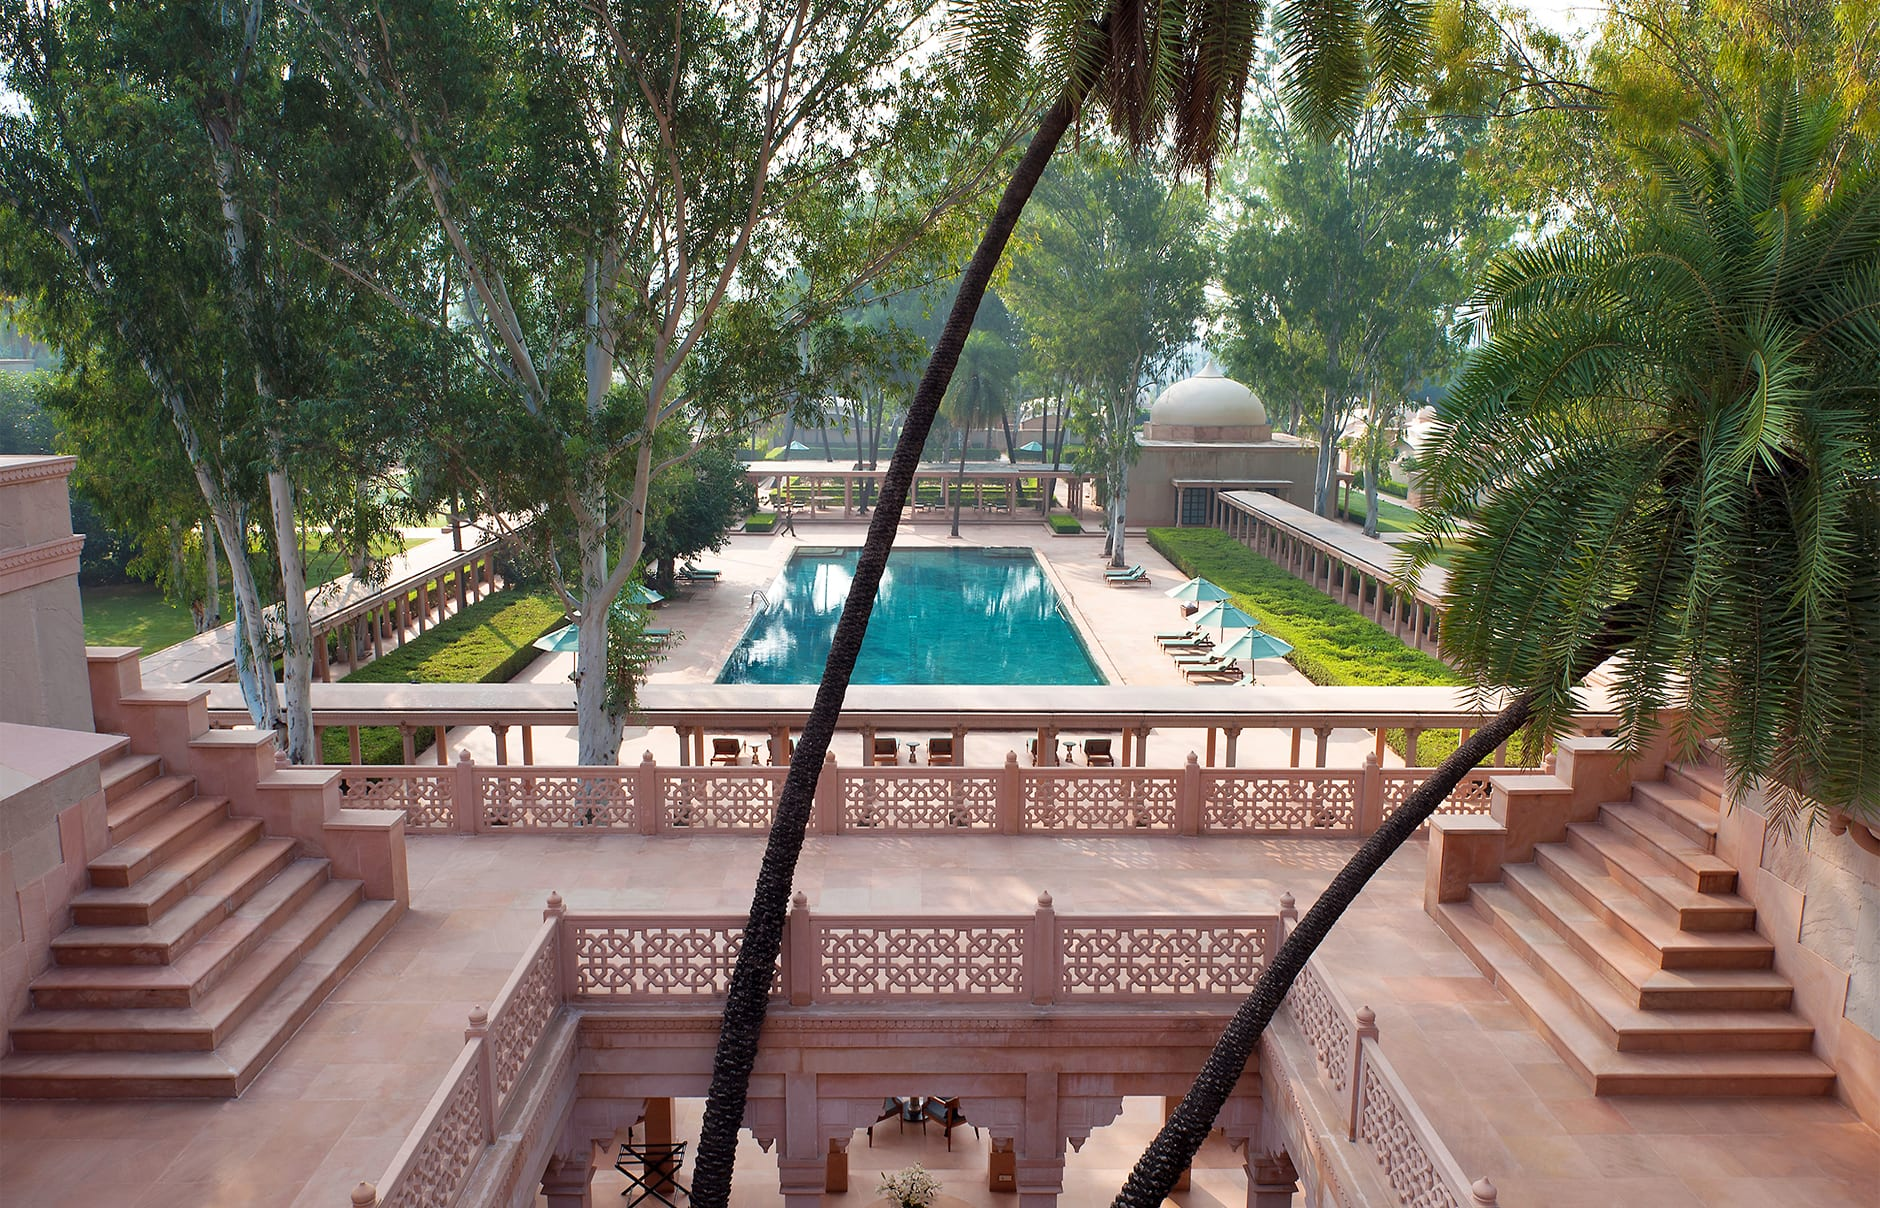 Roof Terrace. Amanbagh, Alwar, Rajasthan, India. Luxury Hotel Review by TravelPlusStyle. Photo © Aman Resorts